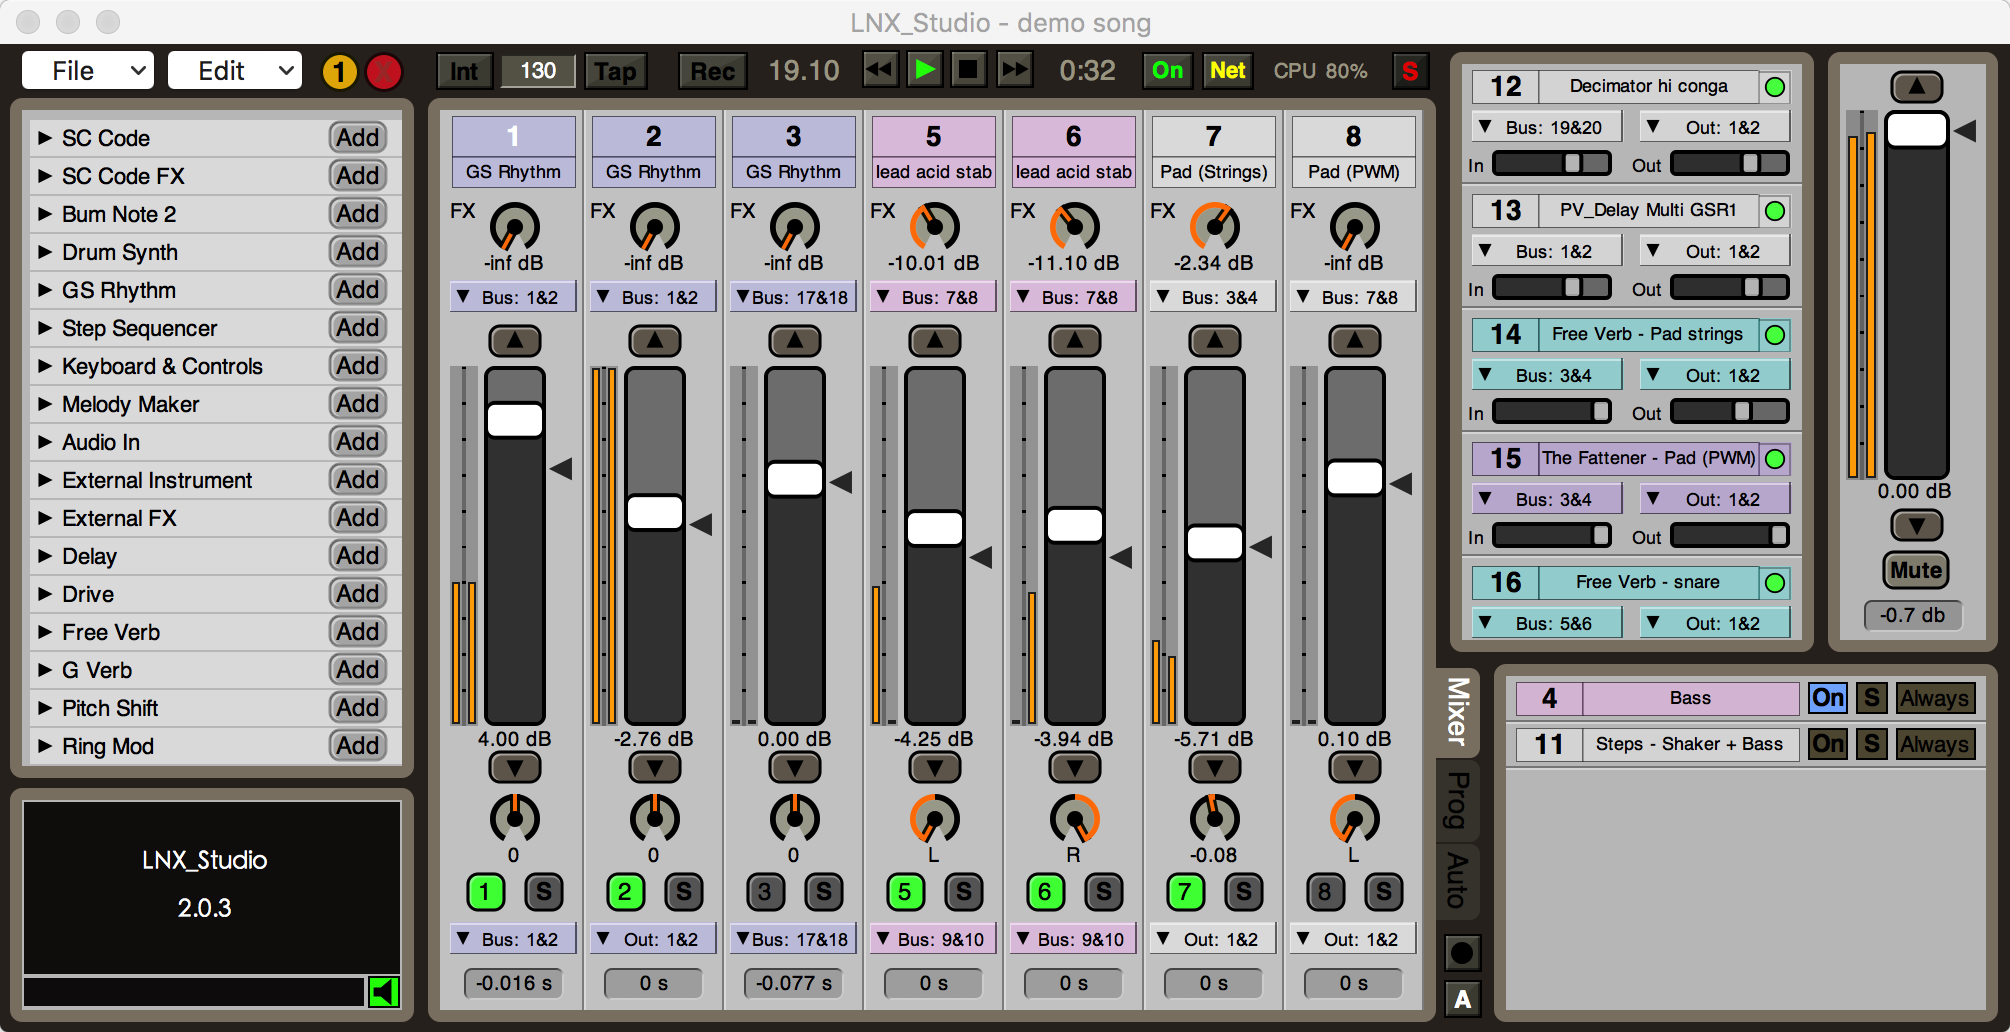 A totally free DAW and live environment, built in SuperCollider